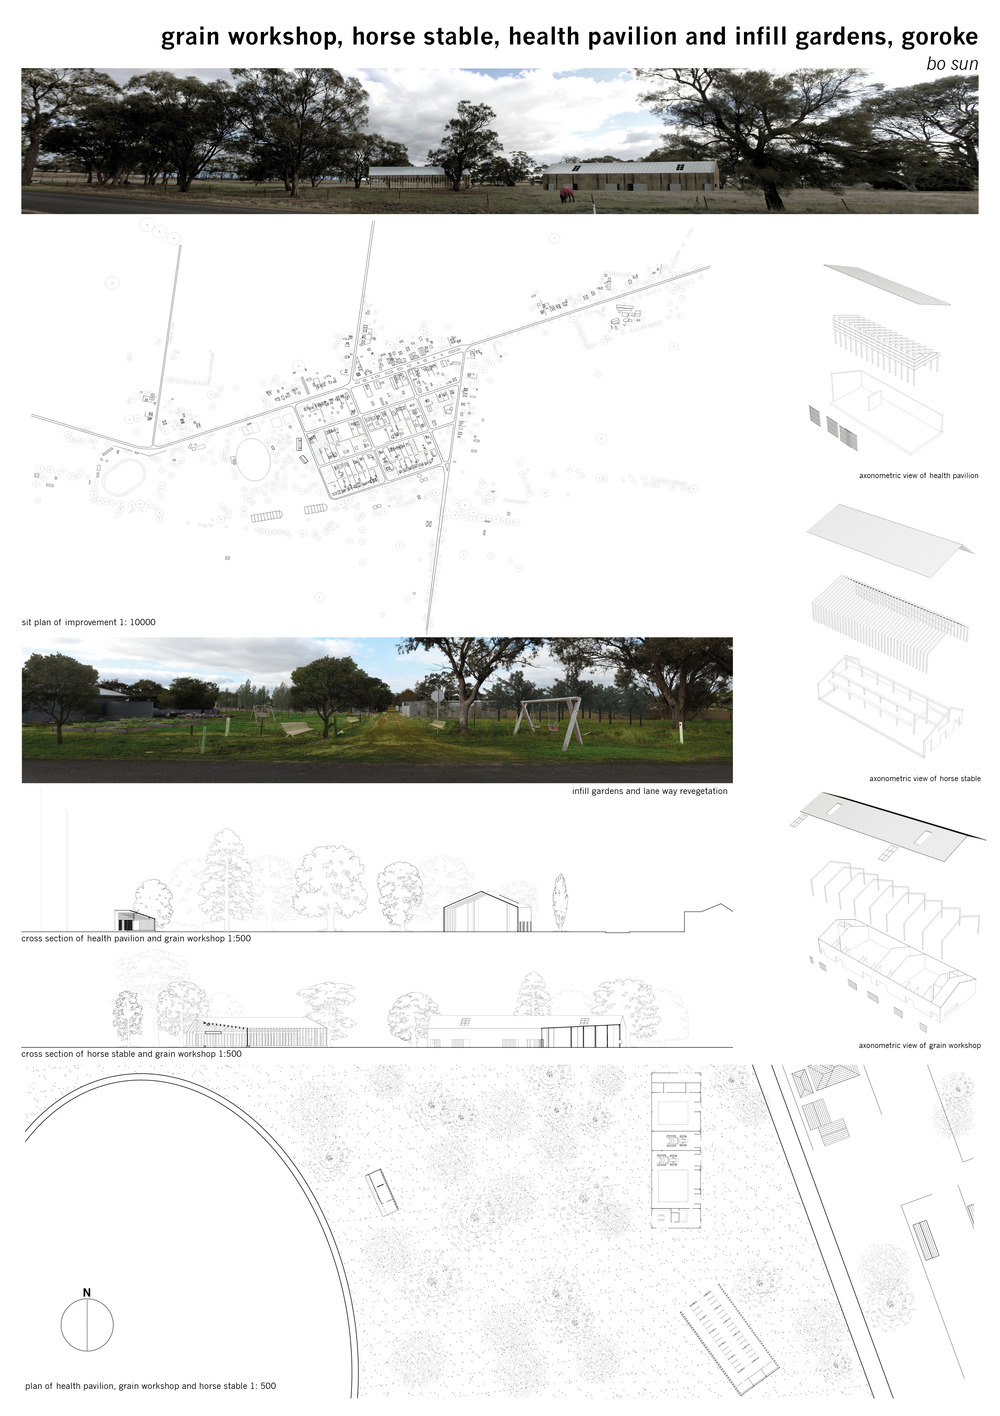 A series of pavilions and open spaces are proposed to house equine therapy and recreation programs.